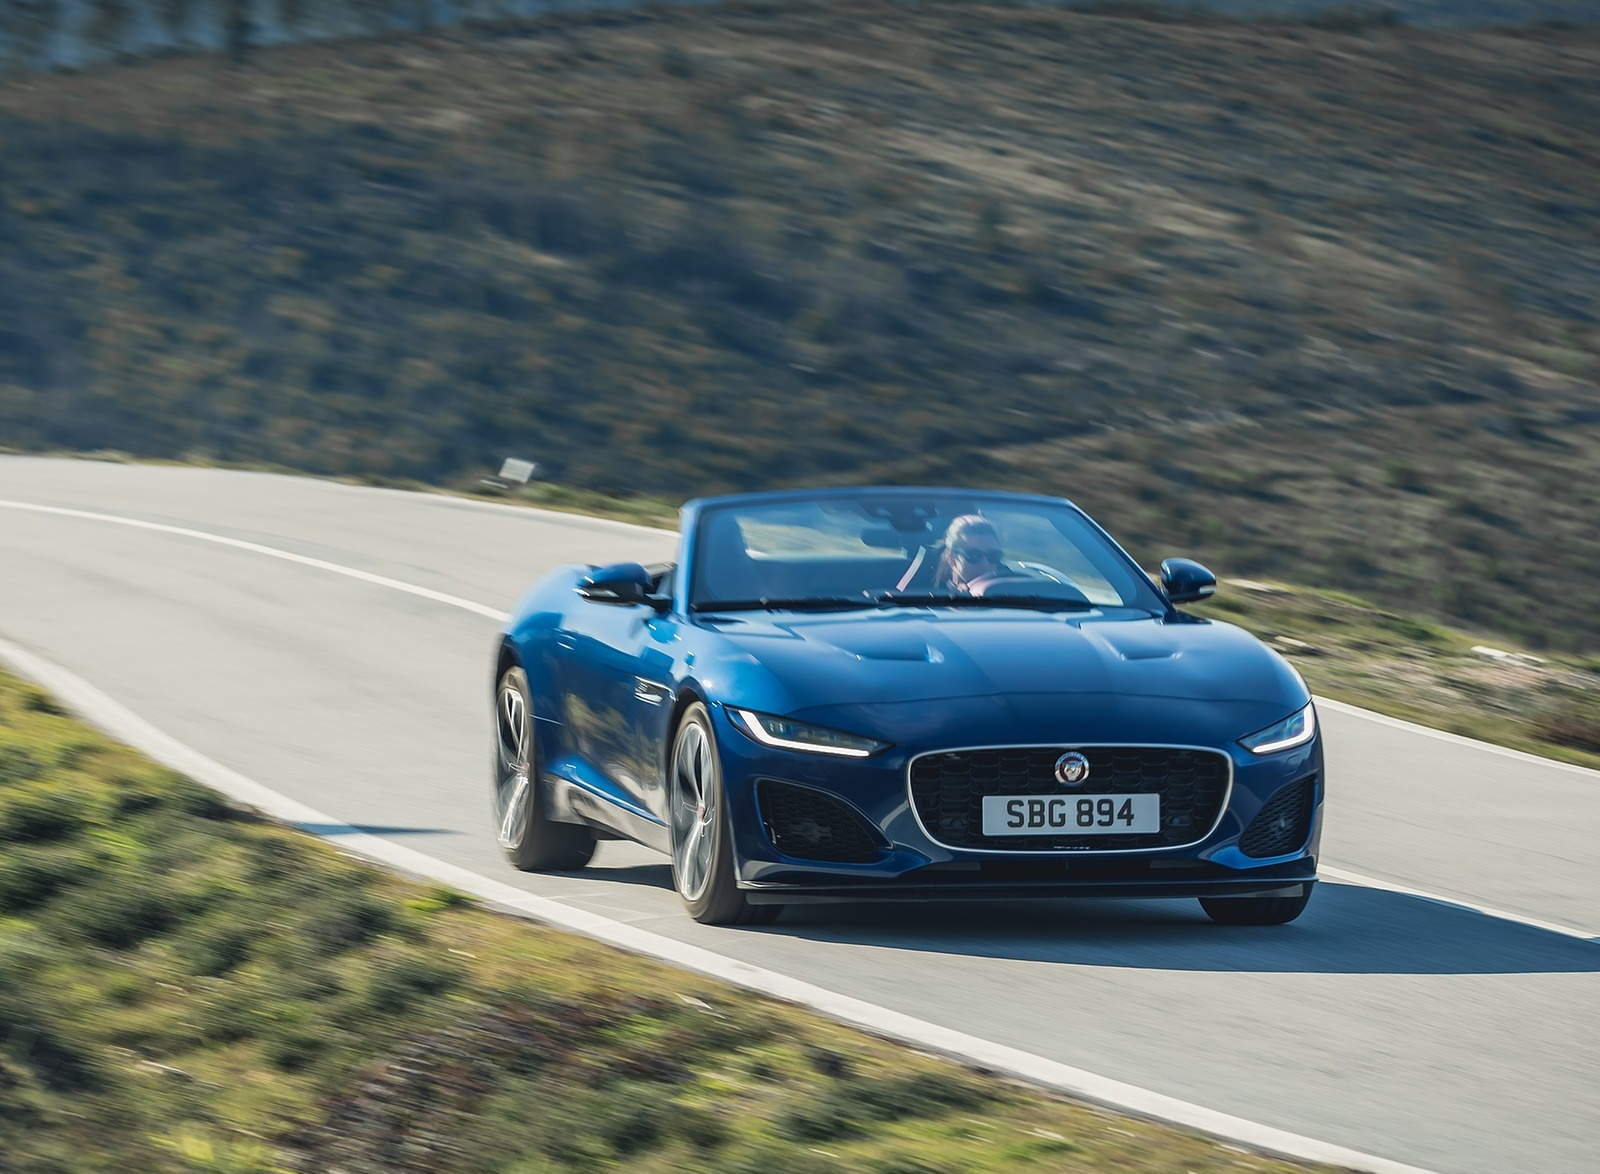 2021 Jaguar F-TYPE P300 Convertible RWD (Color: Bluefire) Front Three-Quarter Wallpapers (3)